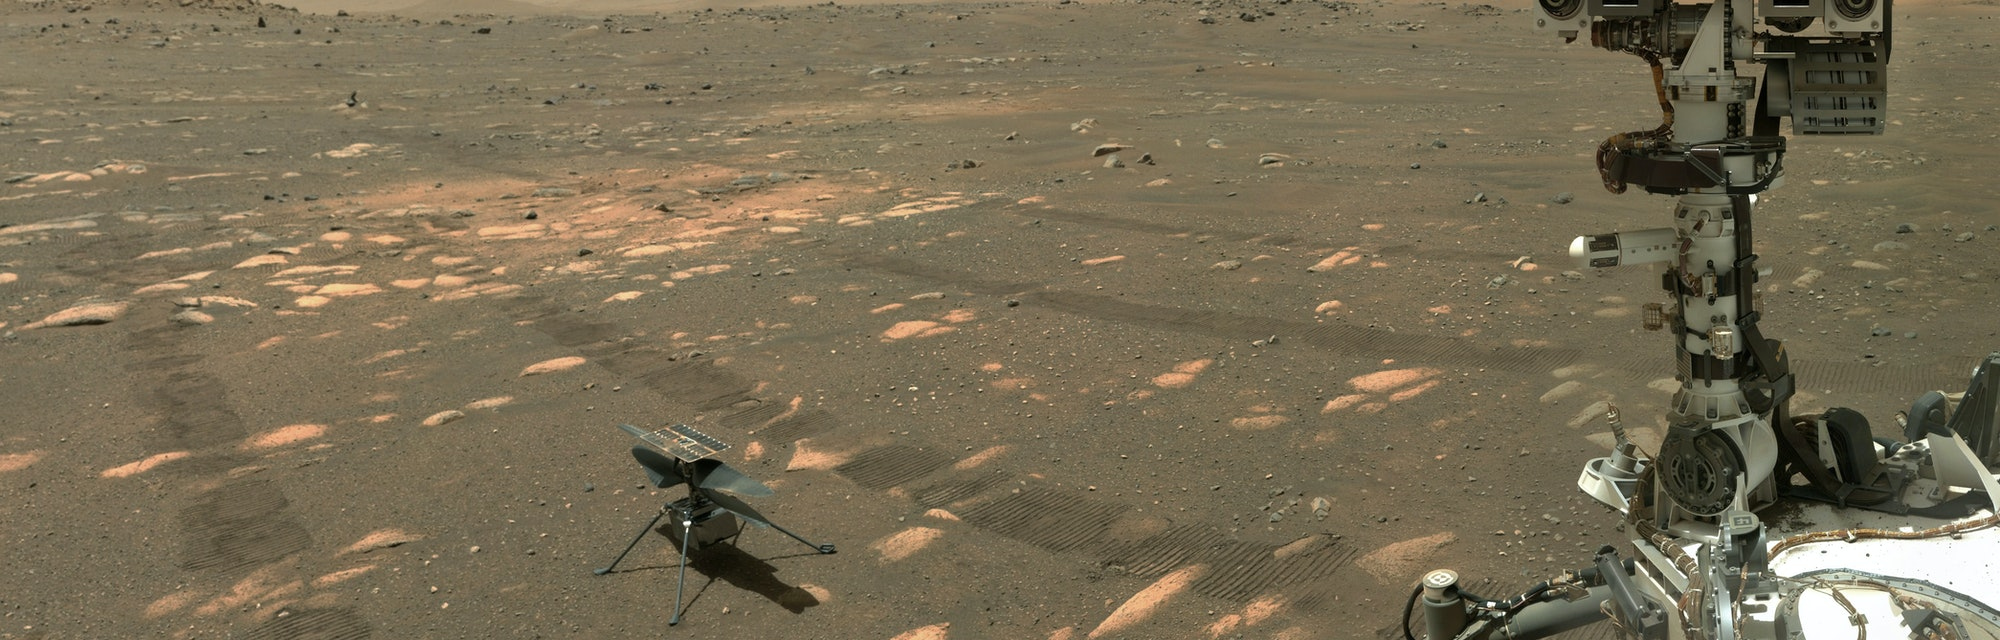 NASA's Perseverance Mars rover took a selfie with the Ingenuity helicopter, seen here about 13 feet (3.9 meters) from the rover in this image taken April 6, 2021, the 46th Martian day, or sol, of the mission by the WATSON (Wide Angle Topographic Sensor for Operations and eNgineering) camera on the SHERLOC (Scanning Habitable Environments with Raman and Luminescence for Organics and Chemicals) instrument, located at the end of the rover's long robotic arm.